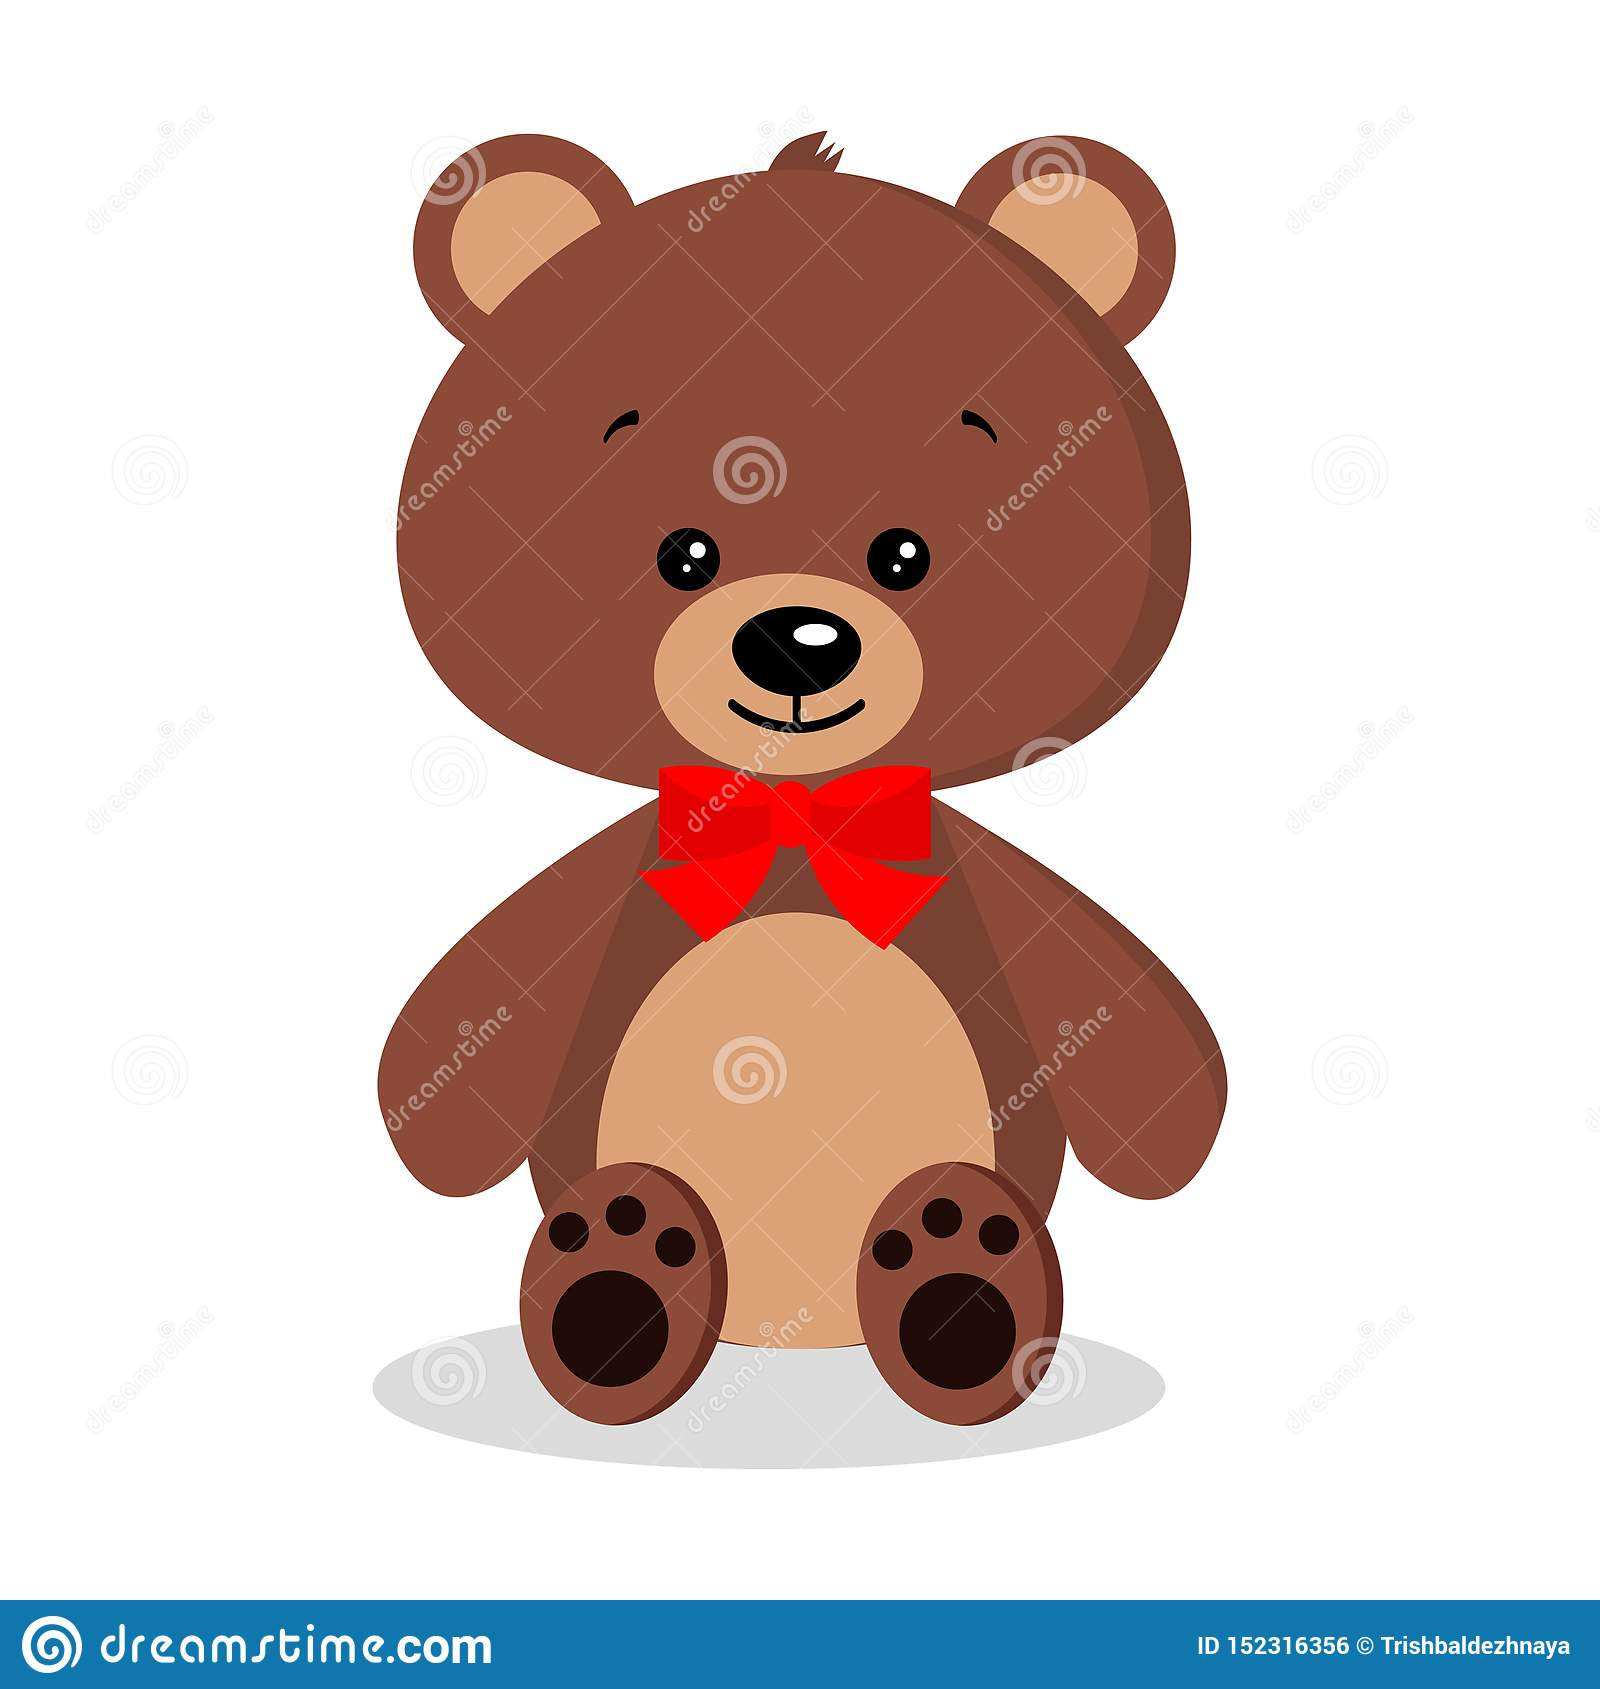 Isolated cartoon cute, sweet, romantic and festive brown teddy bear